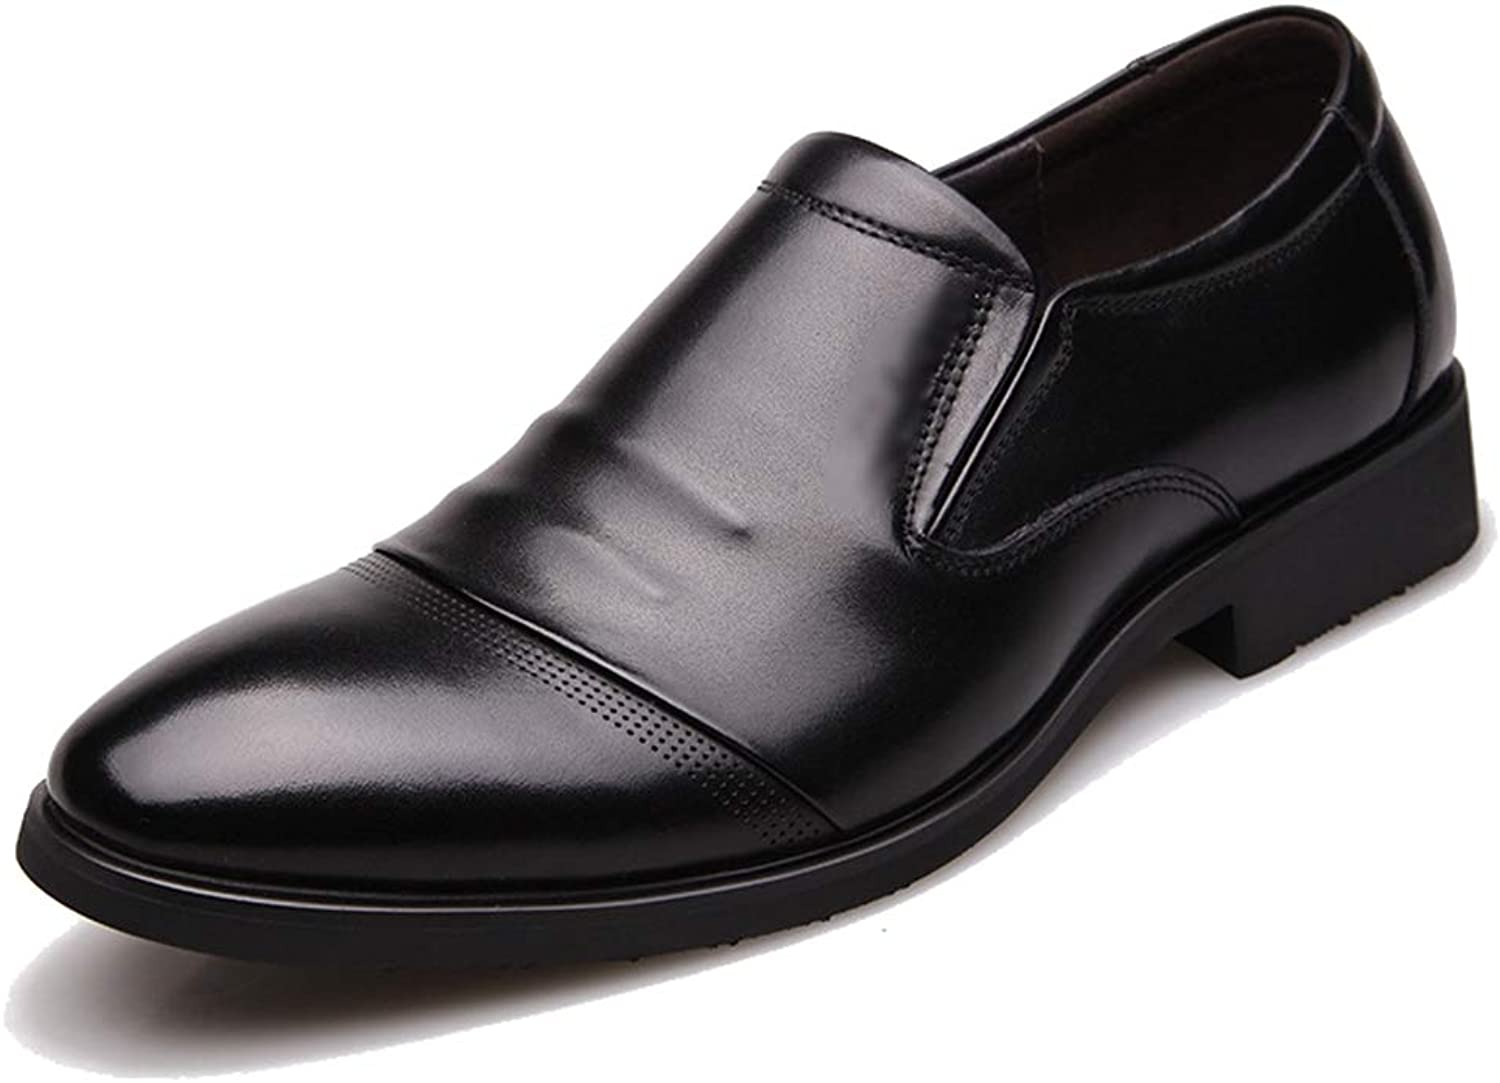 Phil Betty Mens Oxford shoes Black Slip-On Breathable Fashion Business Casual Formal shoes